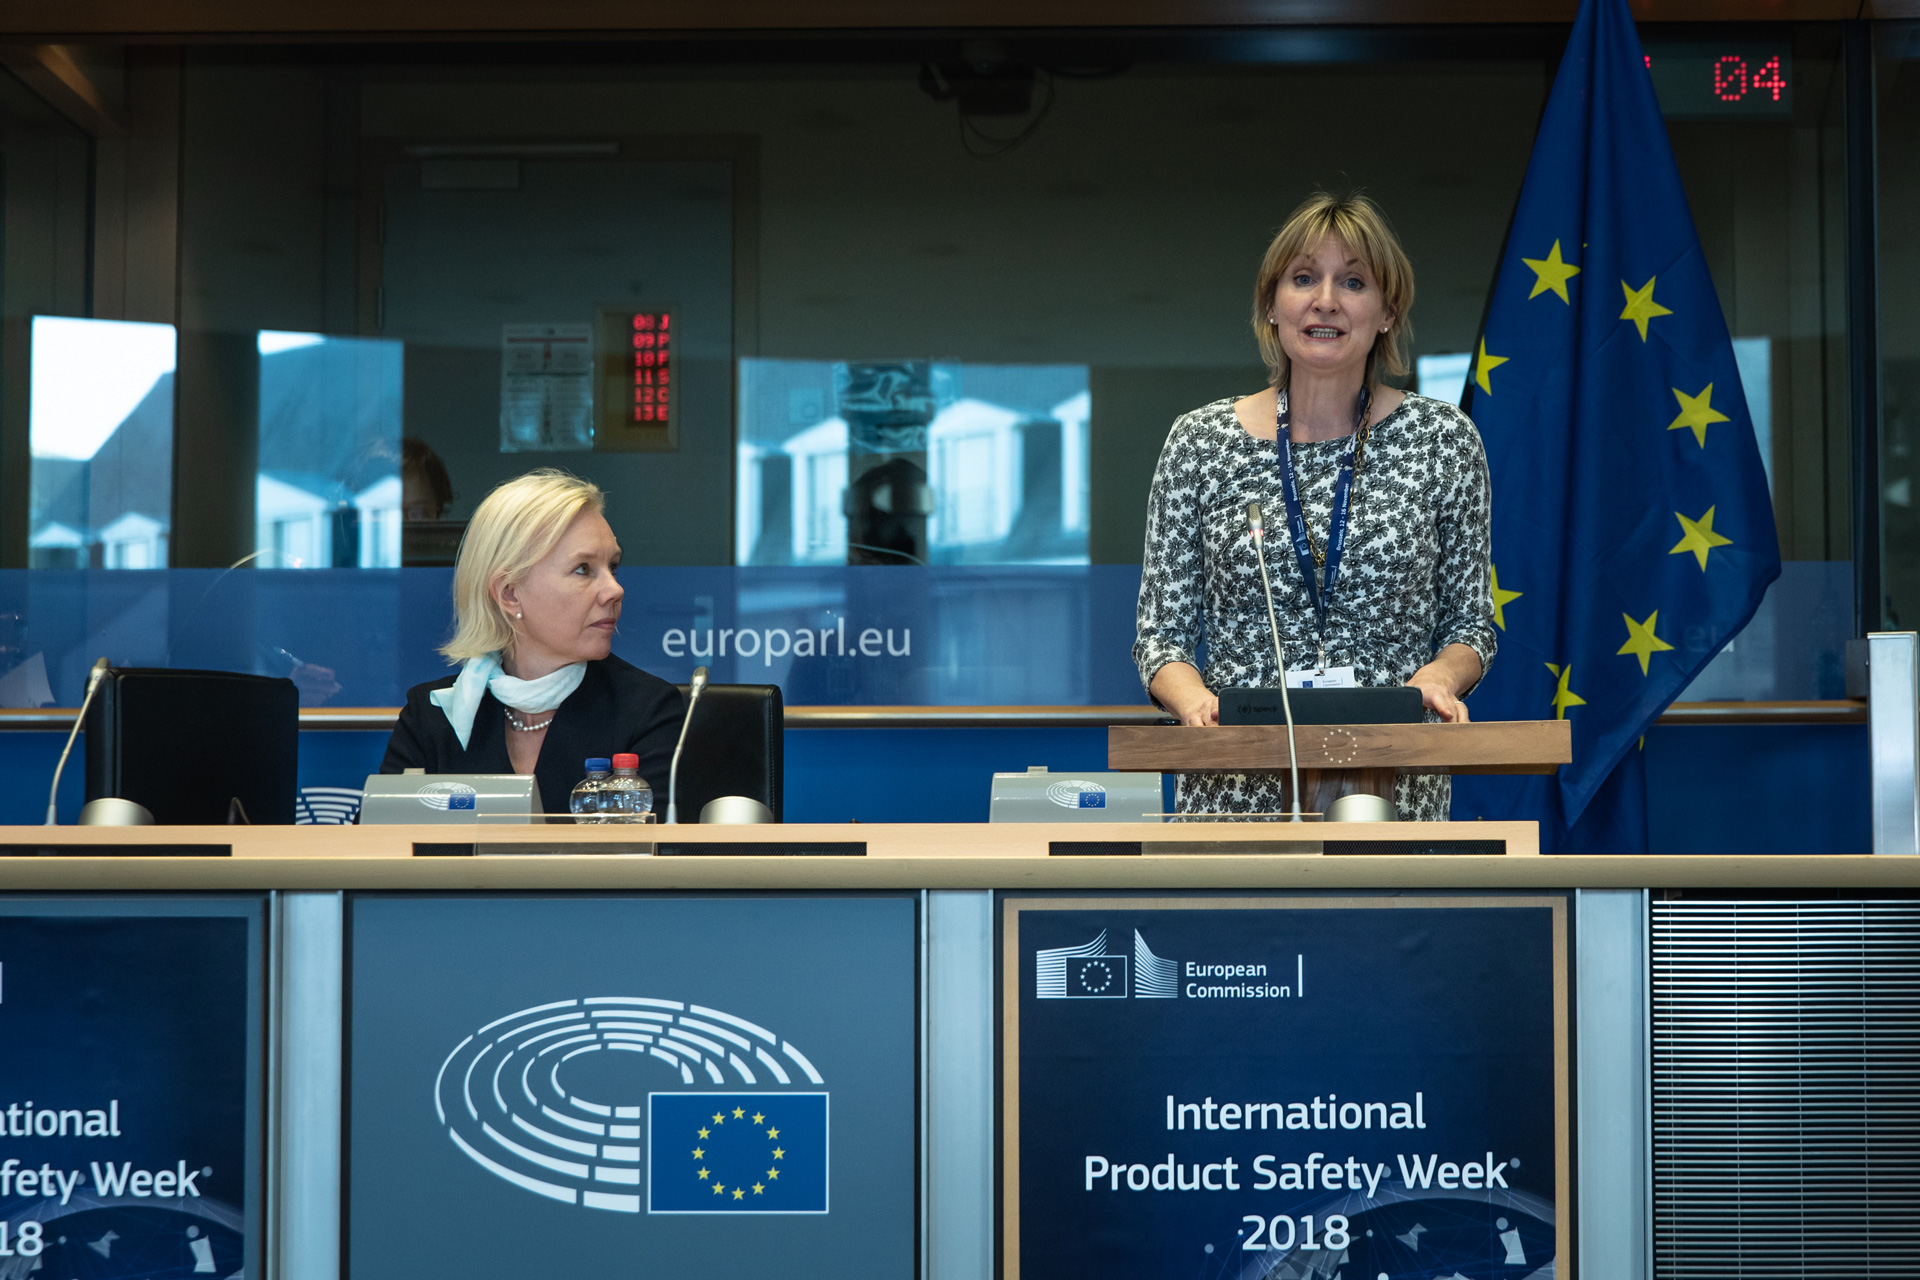 International Product Safety Week 2018 / European Commission / ProPager / Laura PERERA SAN MARTIN, 2018.